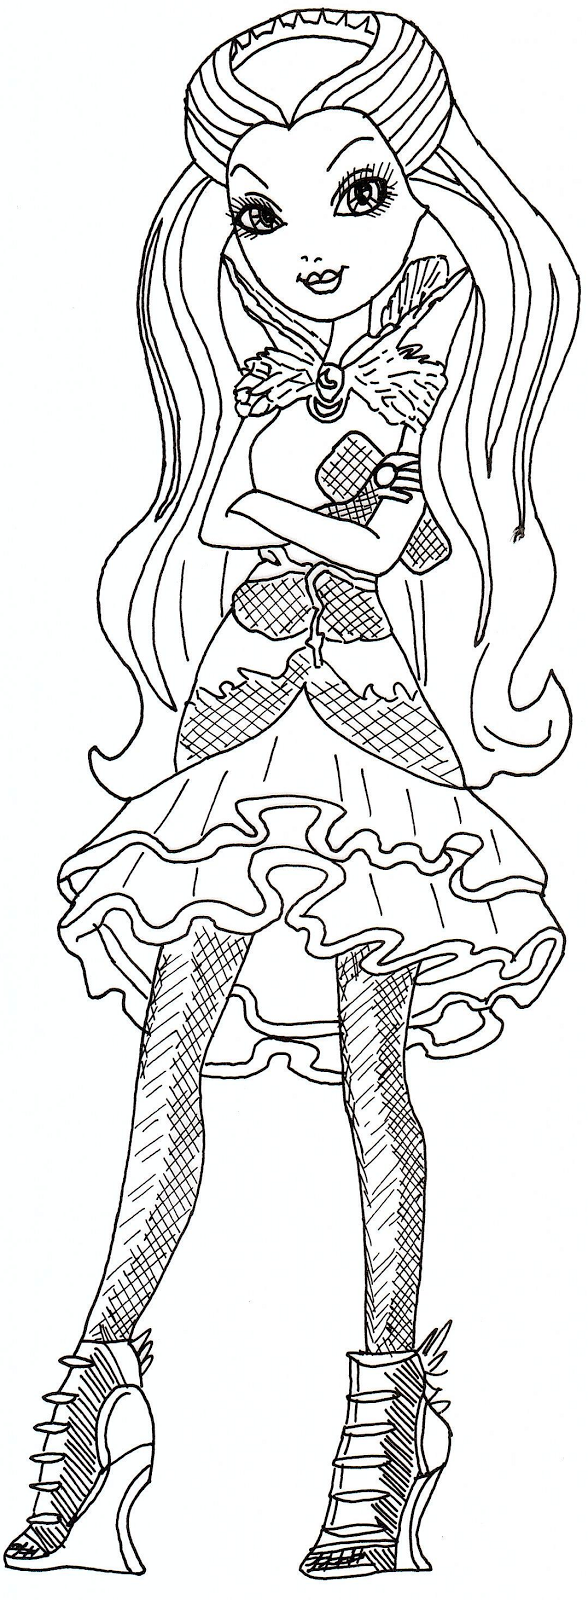 Printable coloring pages ever after high - Free Printable Ever After High Coloring Pages Raven Queen Ever